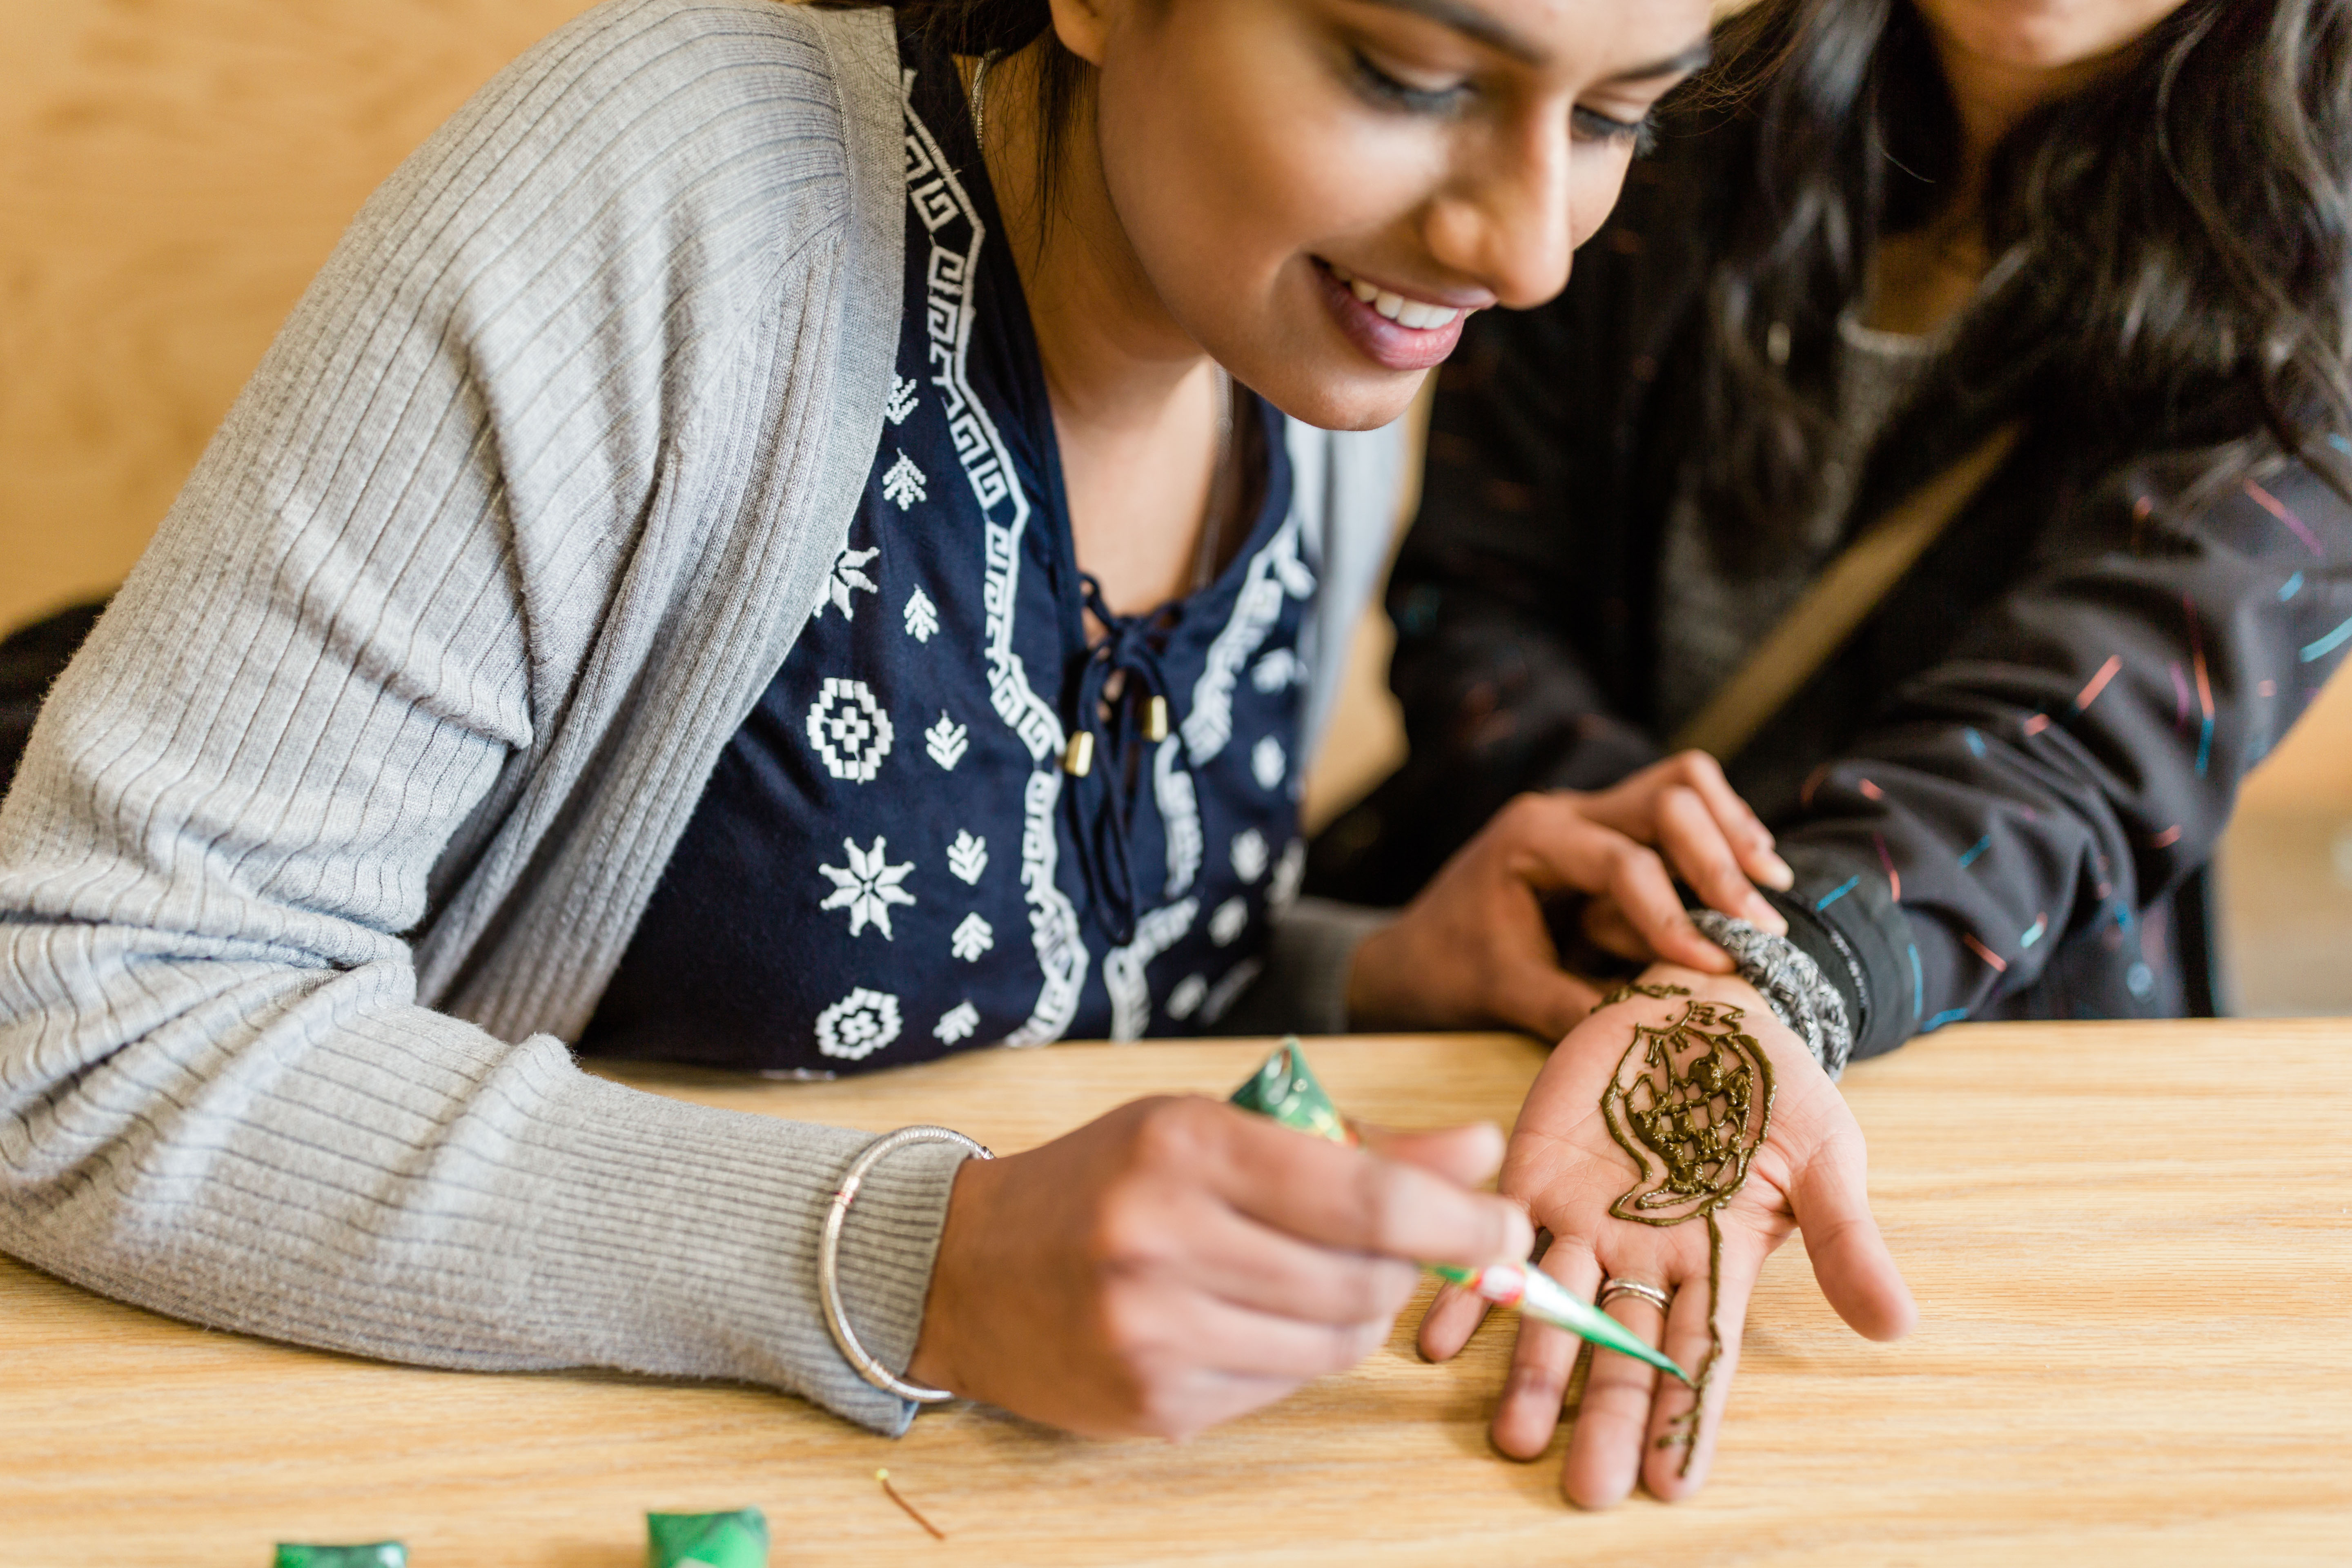 Penticton students take part in multicultural events that feature activities like henna application